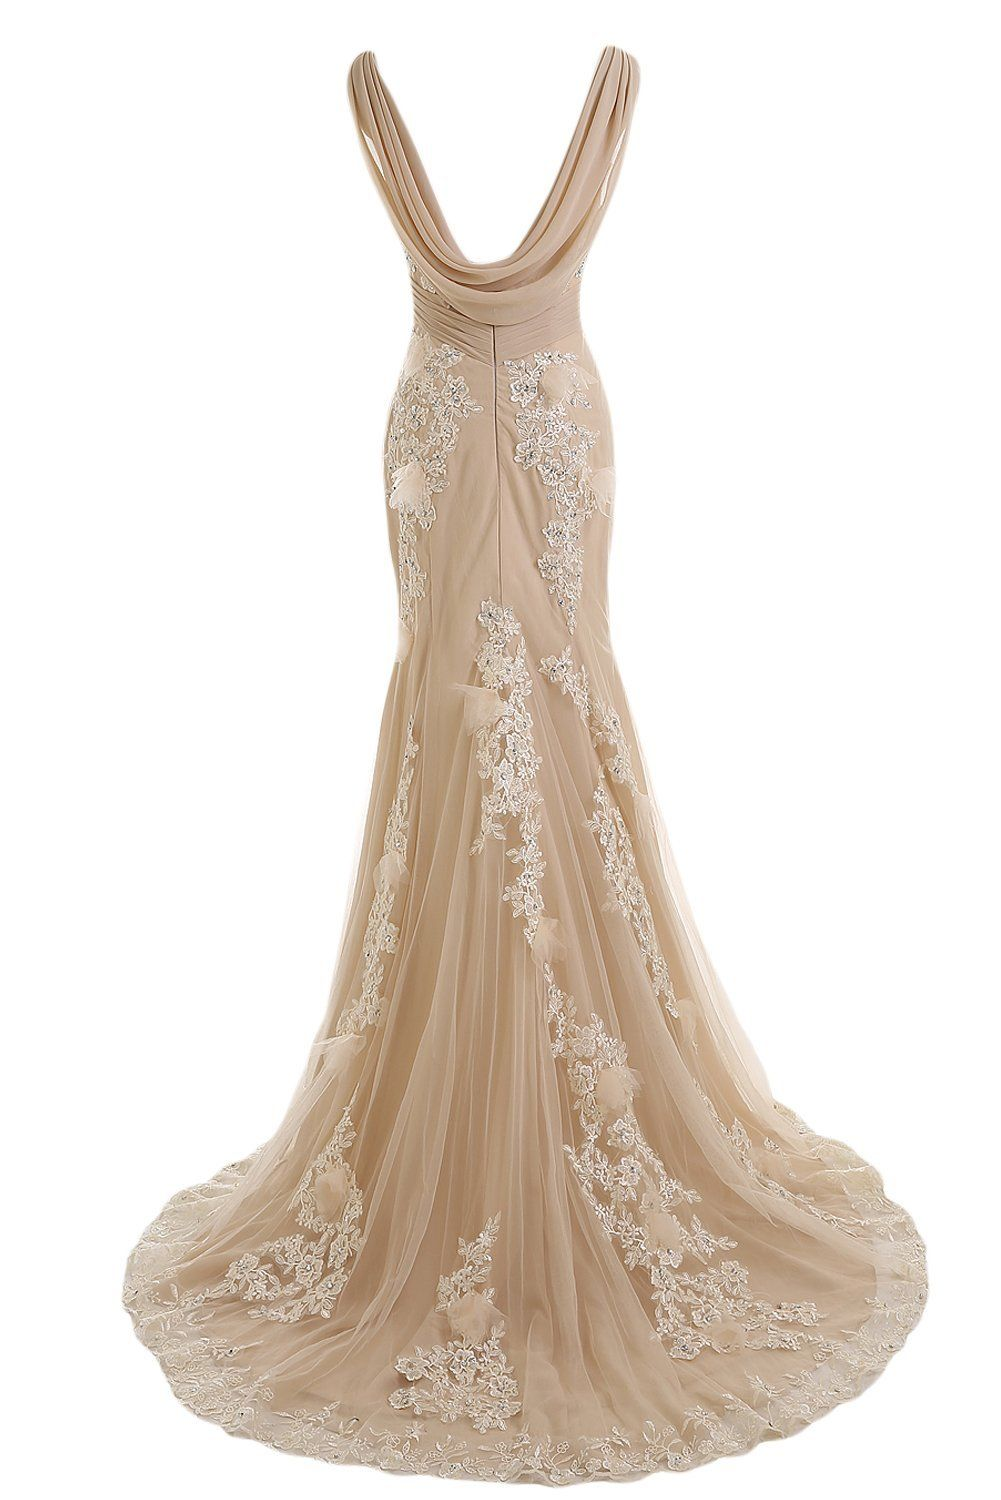 A beautiful wedding gown to flatter your romantic day dangles a beautiful wedding gown to flatter your romantic day champagne lace ombrellifo Gallery